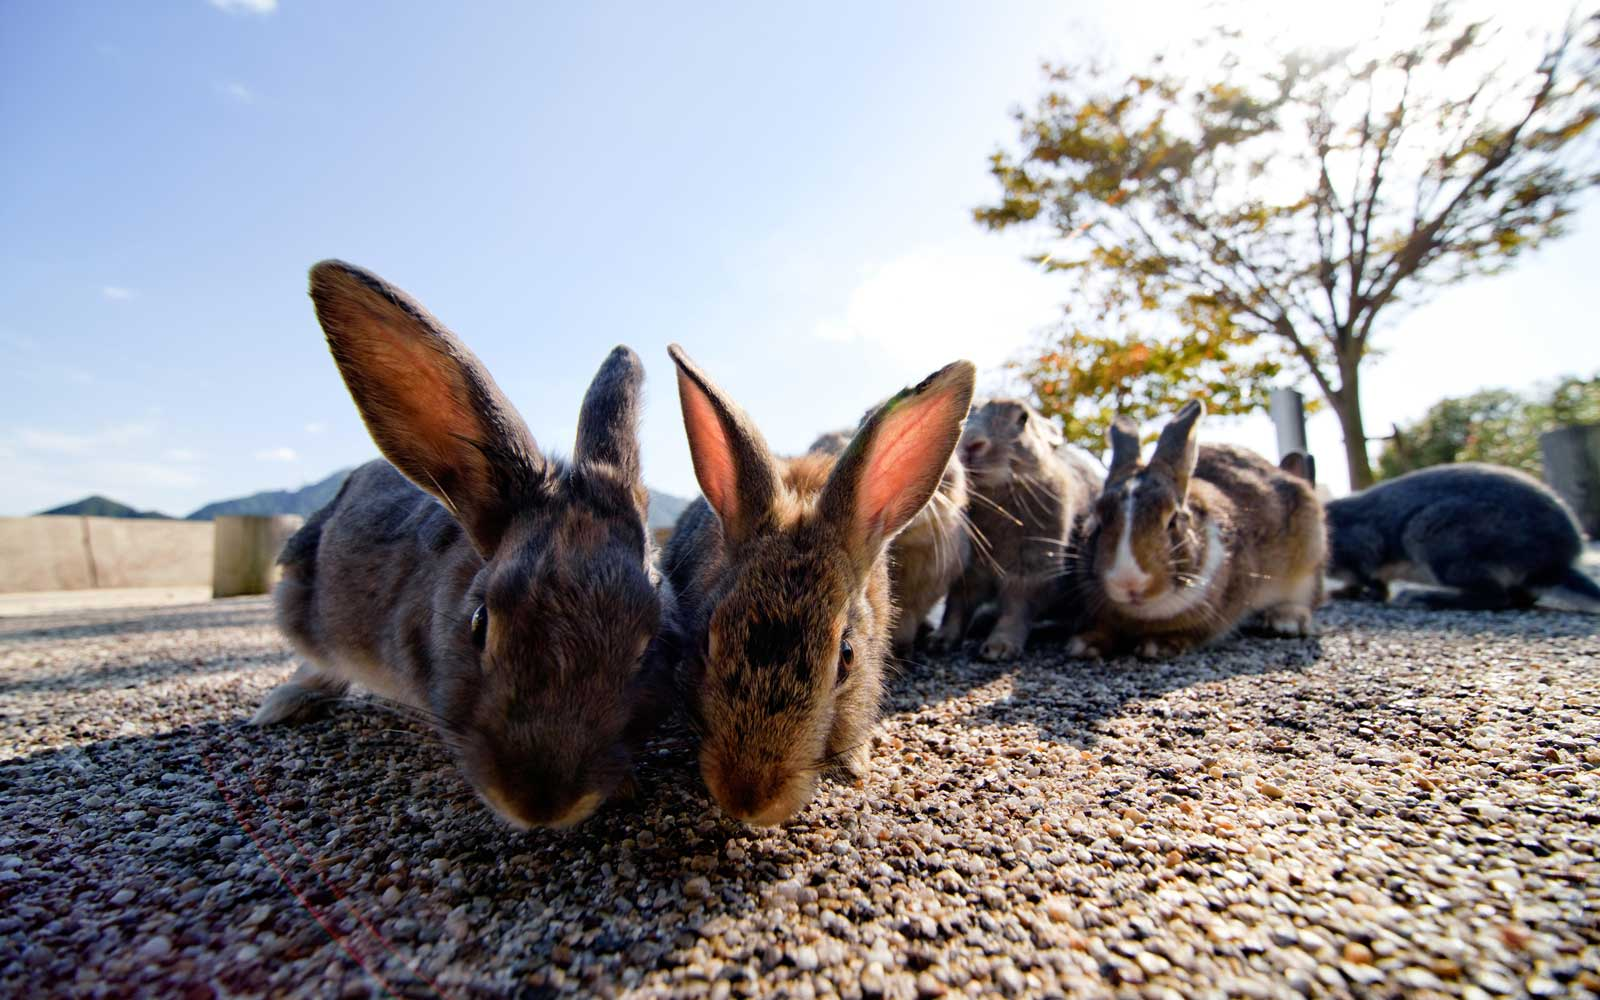 Wild bunnies on Japan's Rabbit Island (Okunoshima)